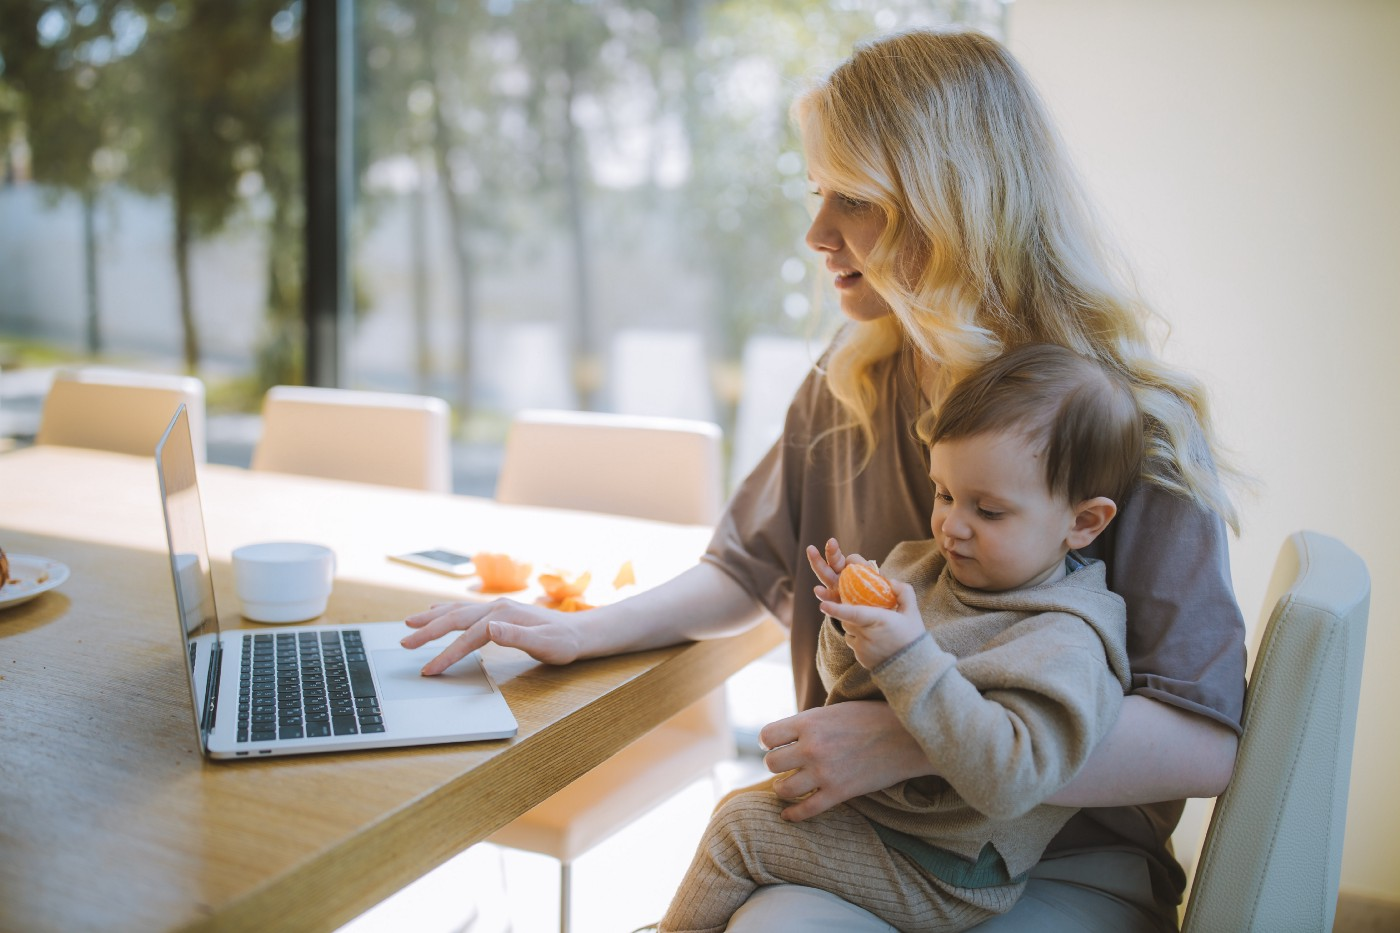 Woman working while holding baby